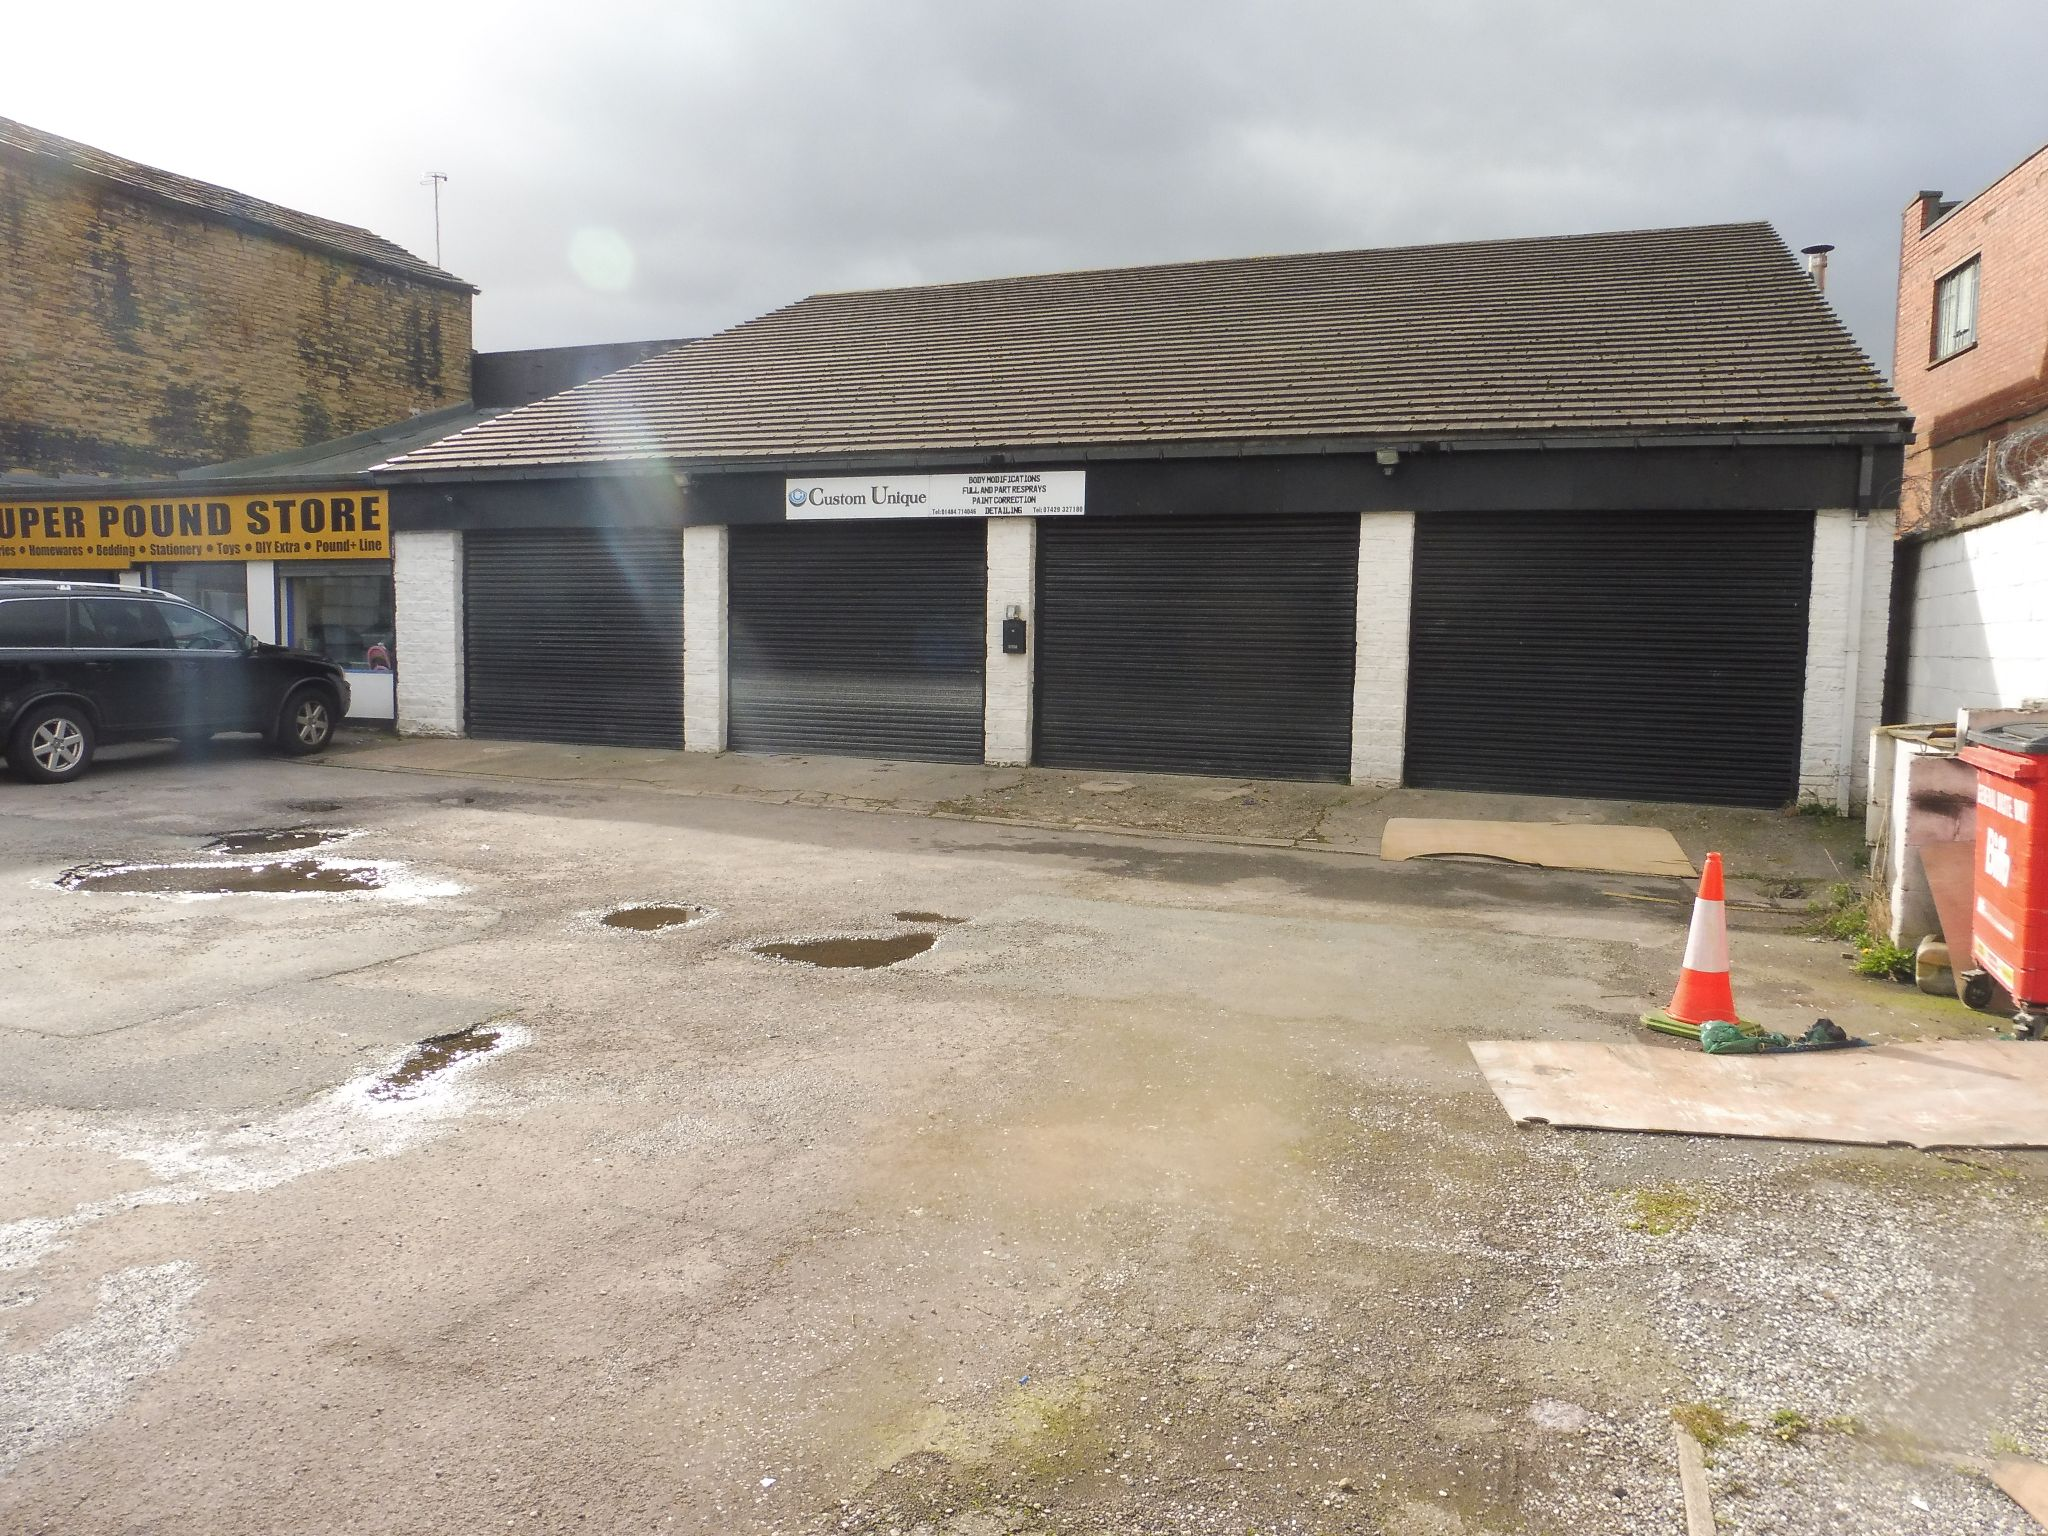 Commercial Property To Let in Calderdale - Main.